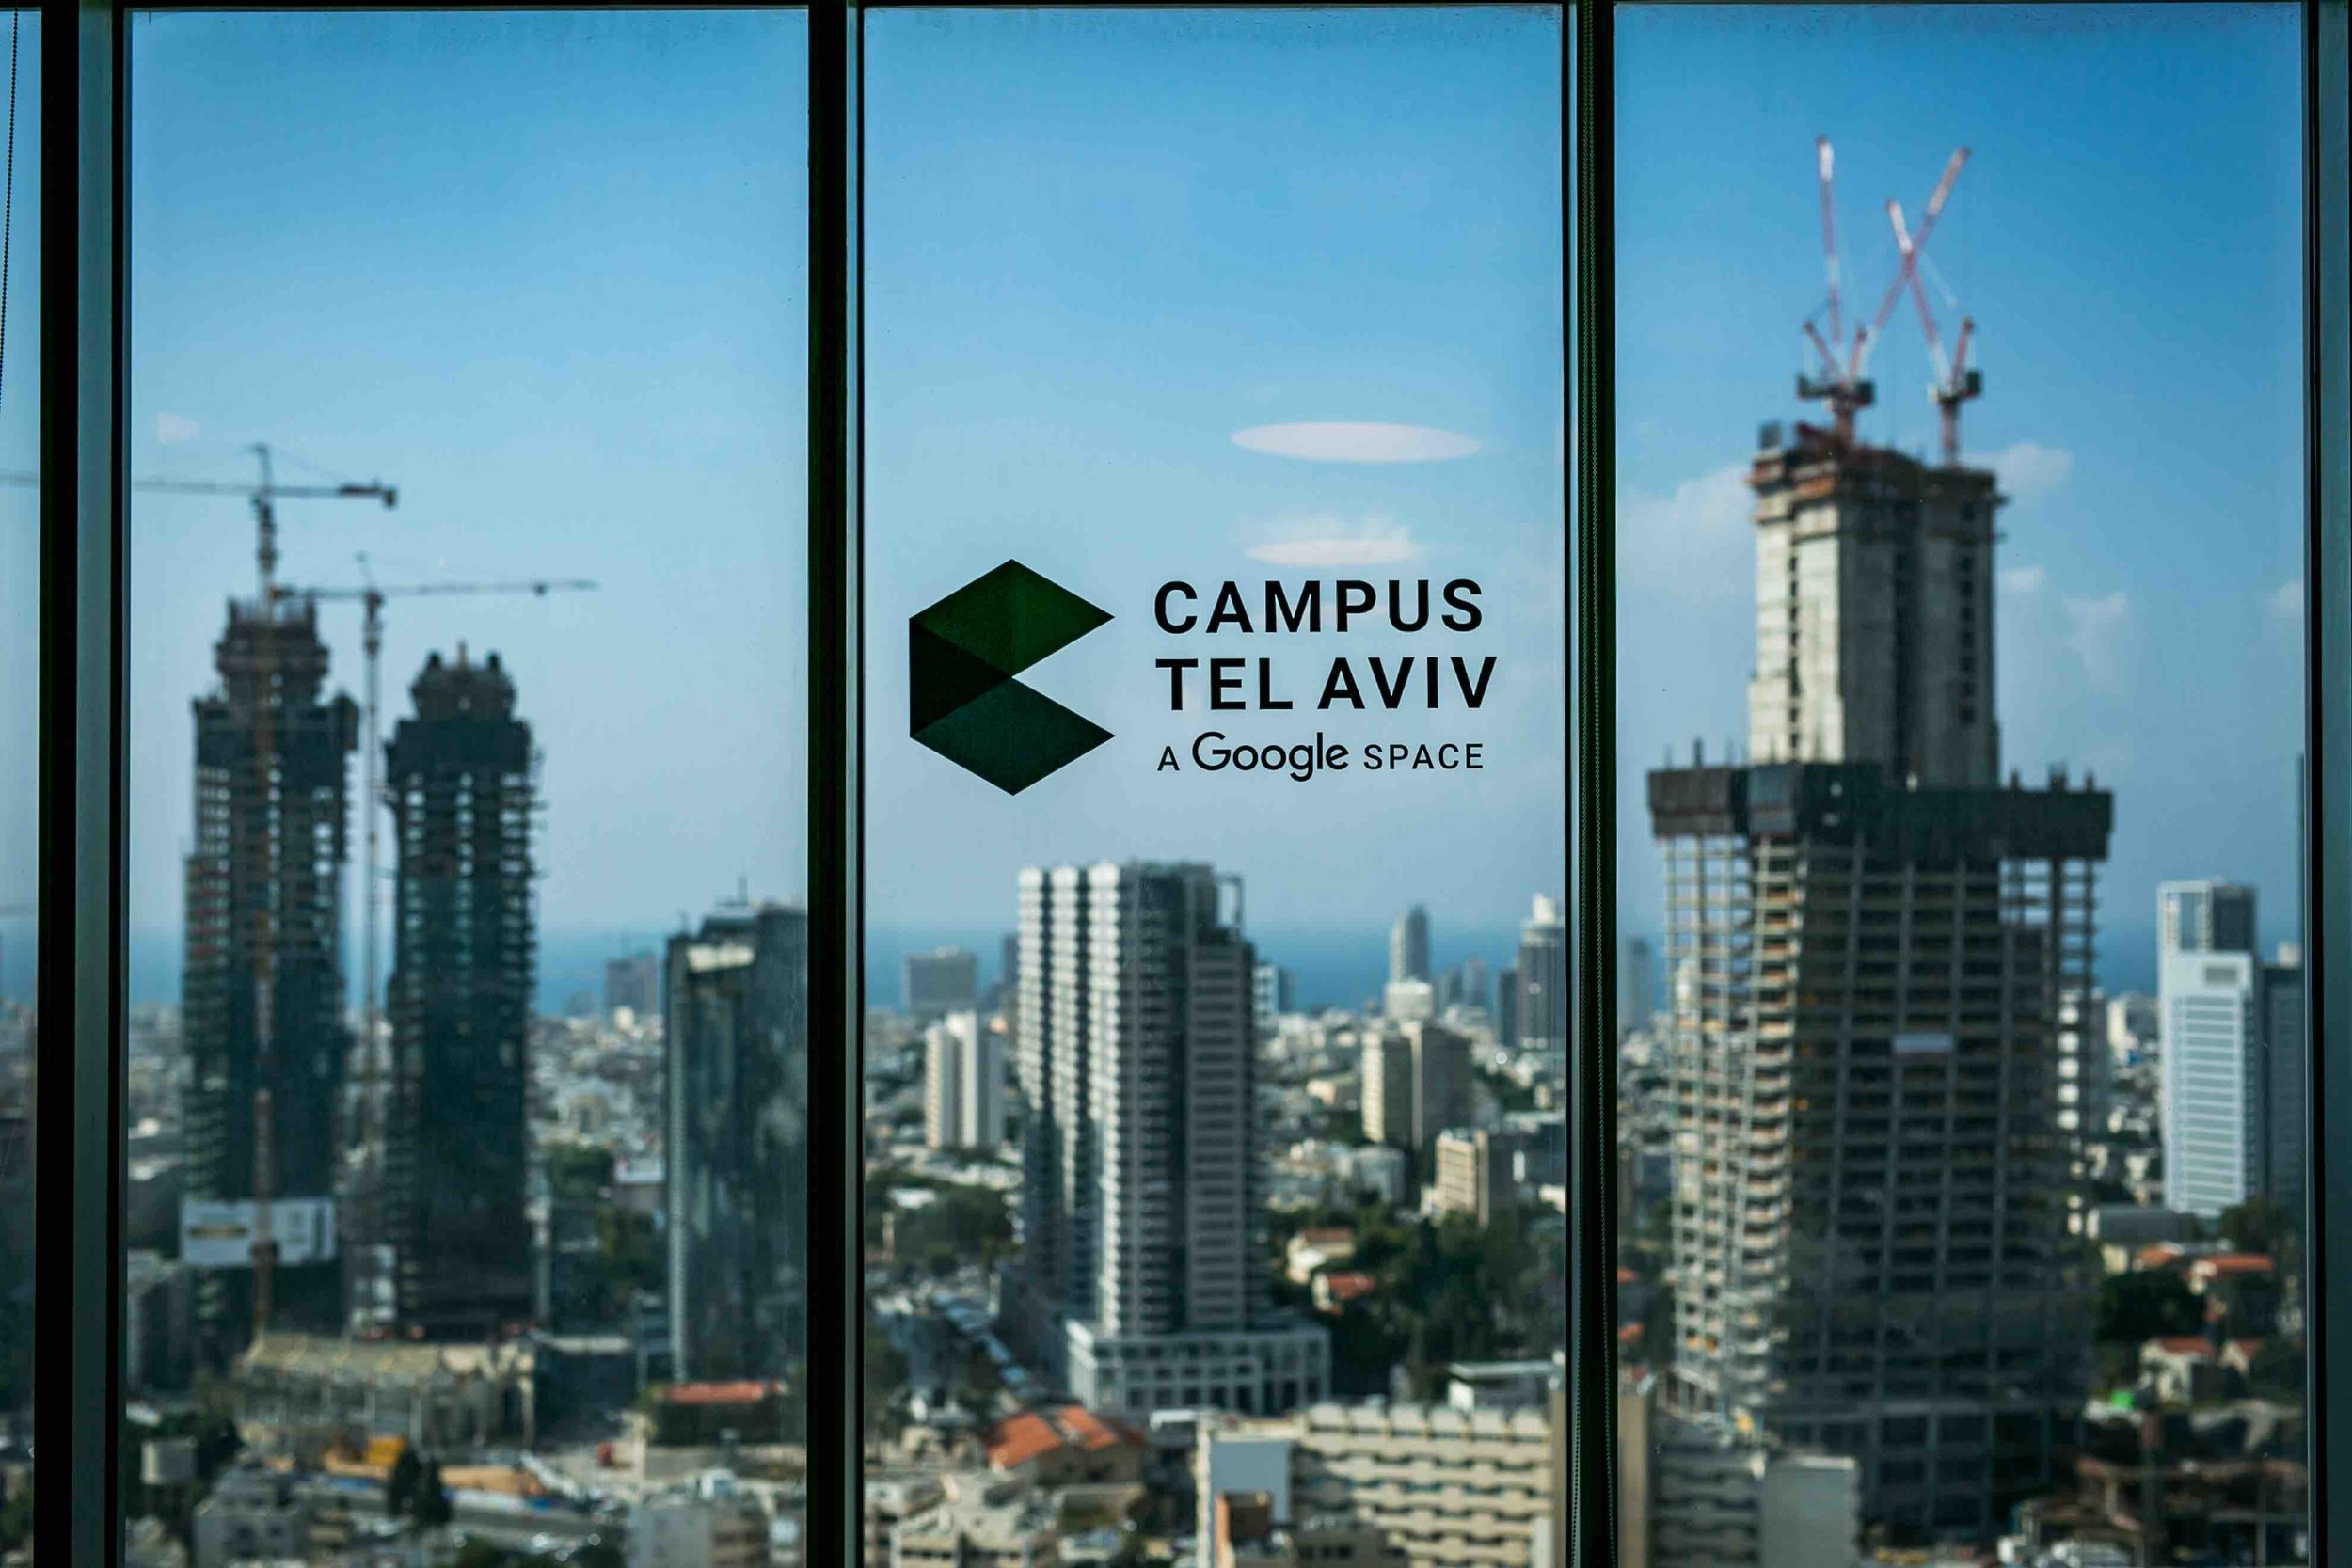 Campus Tel Aviv. Photo by Tomer Foltin courtesy Google Tel Aviv